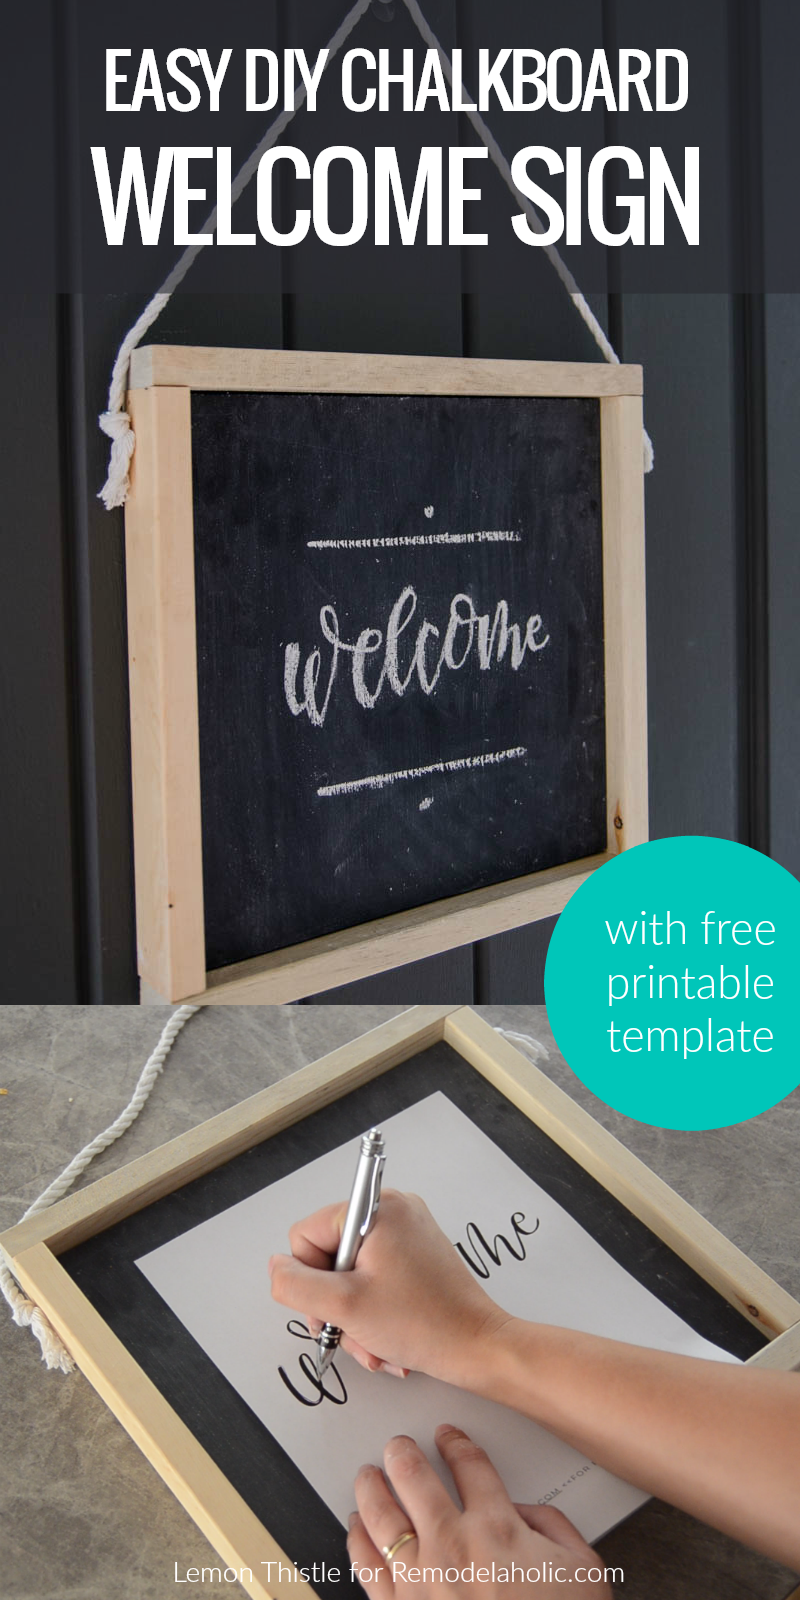 remodelaholic how to make your own wooden chalkboard welcome sign free printable template. Black Bedroom Furniture Sets. Home Design Ideas